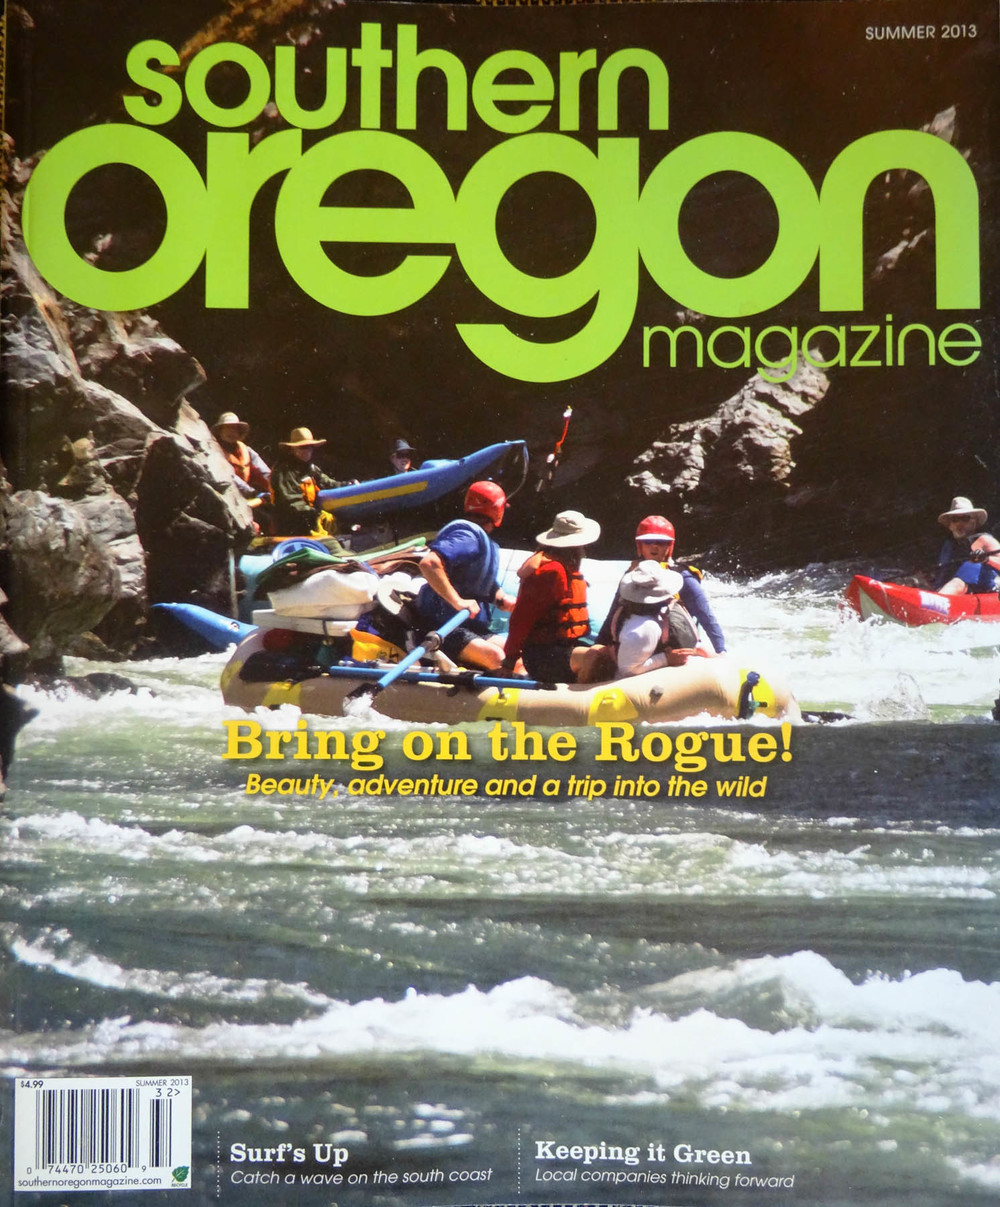 11a Southern Oregon Magazineweb.jpg